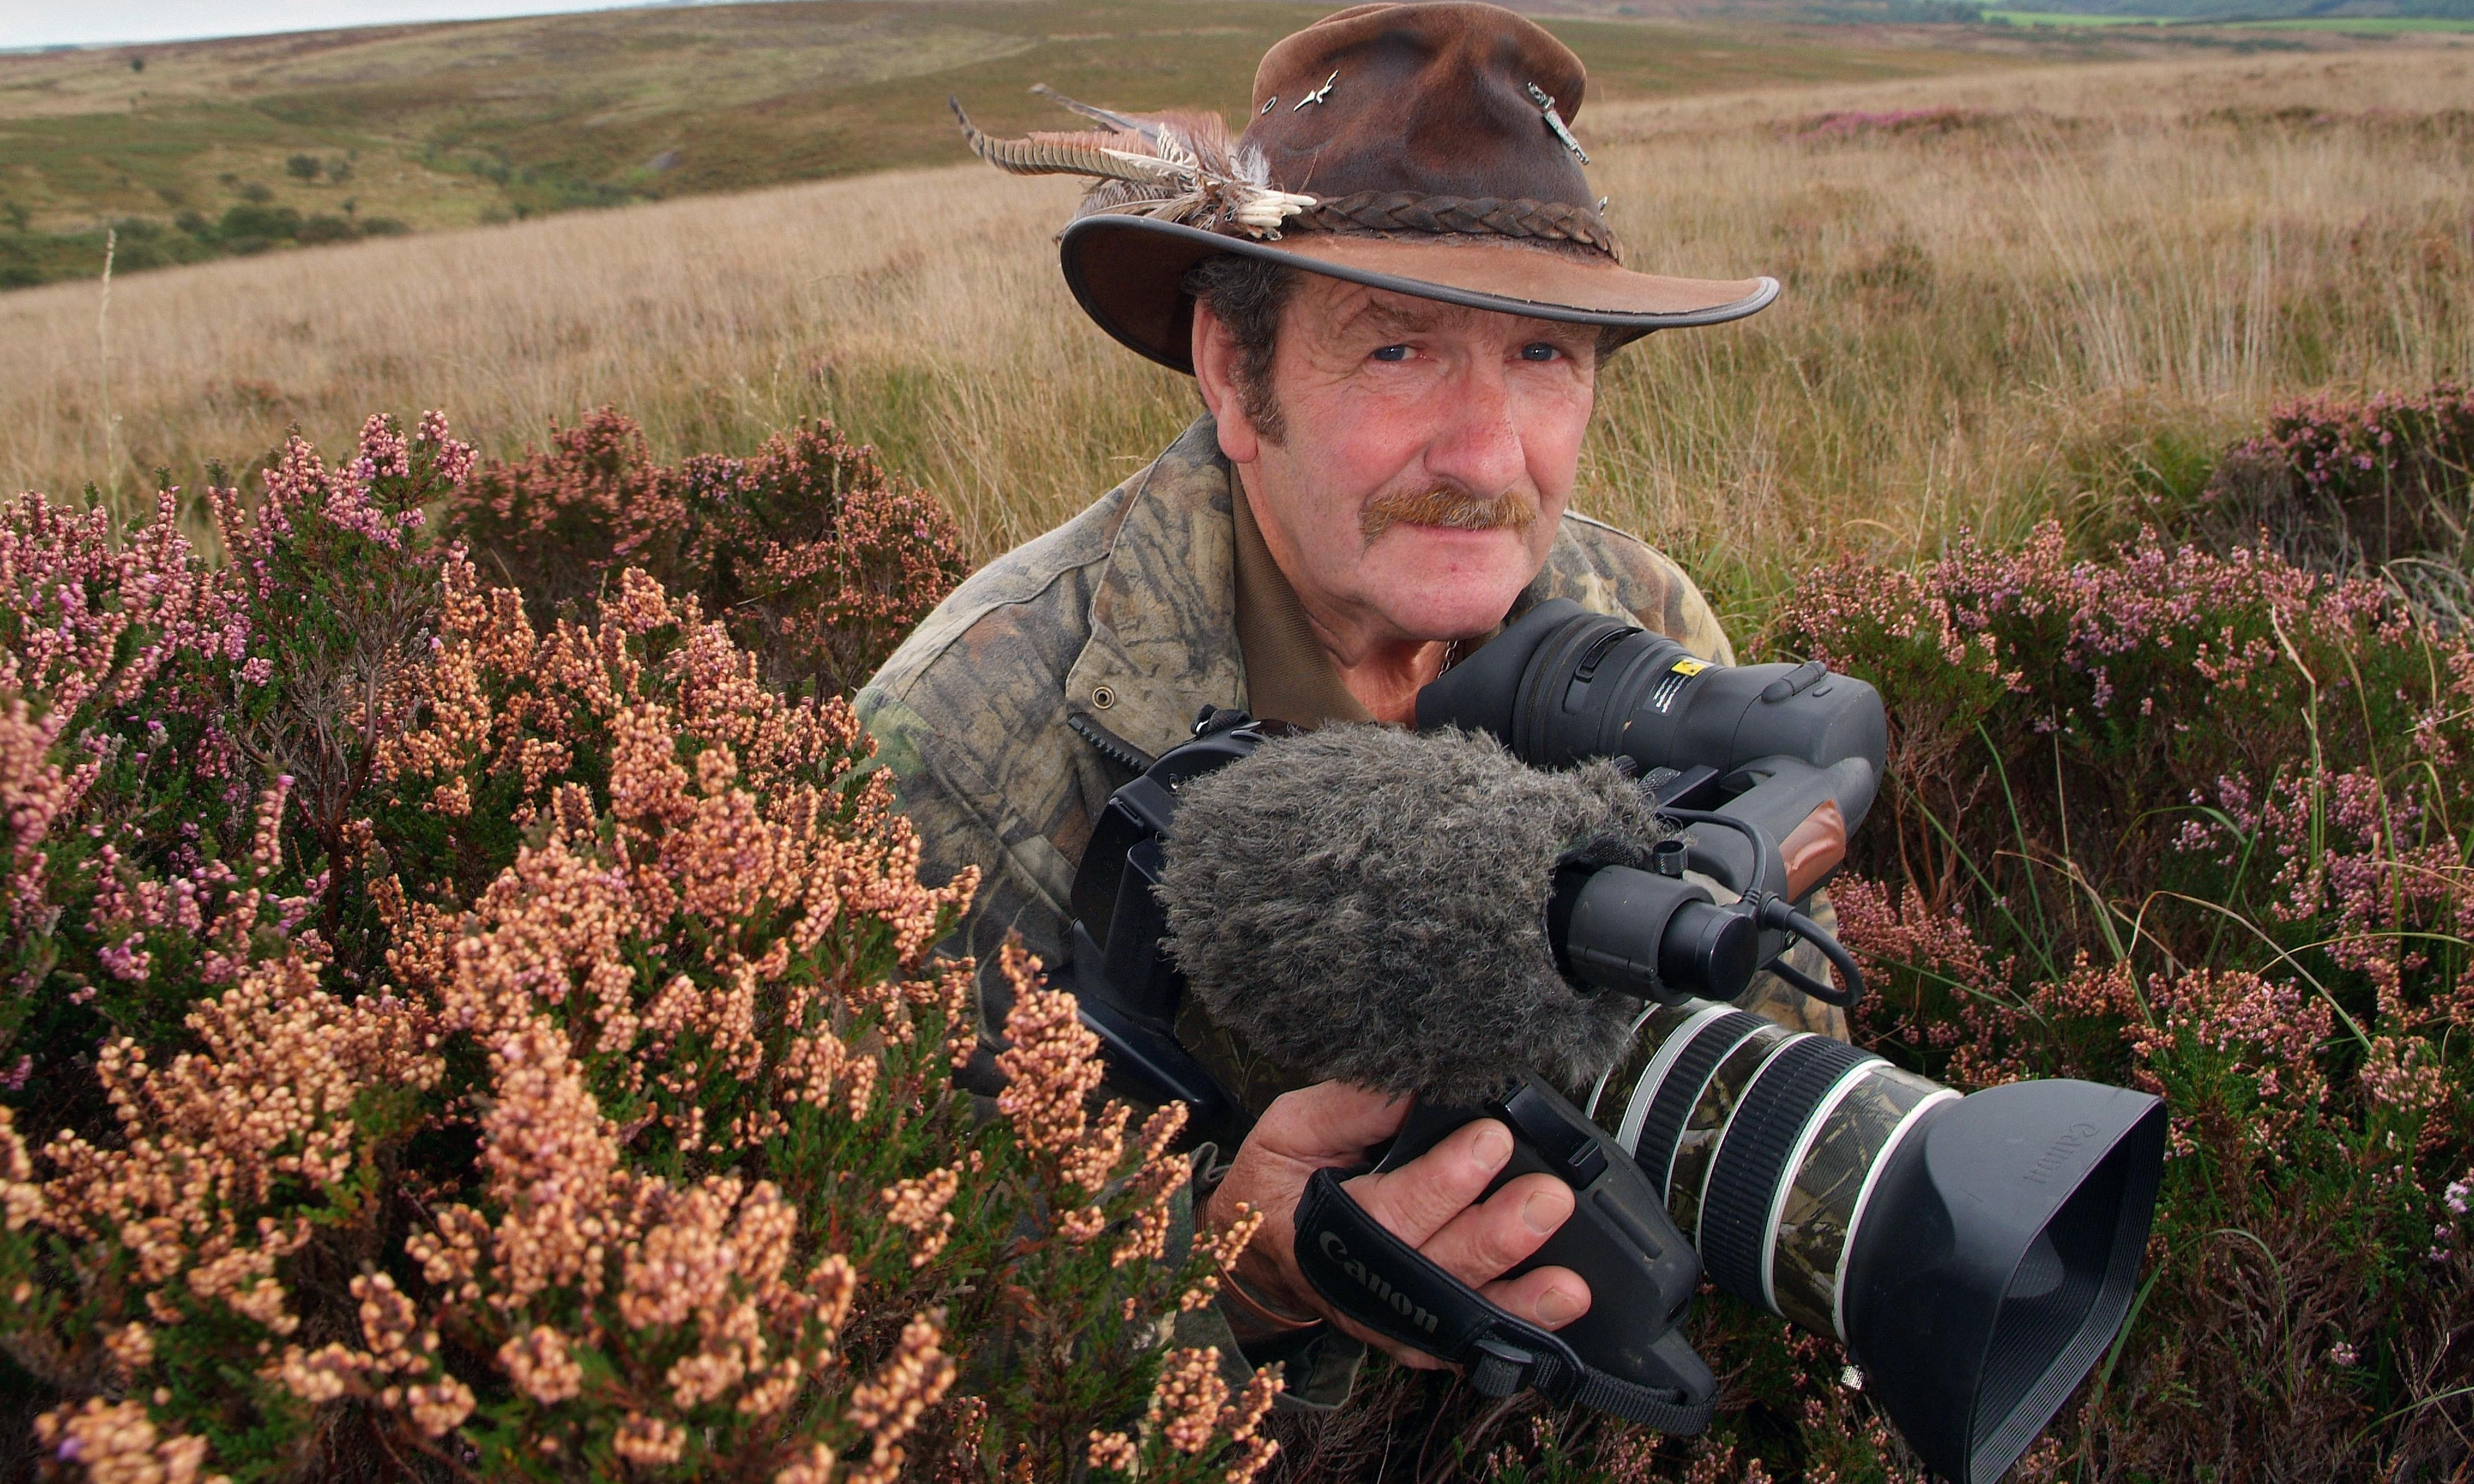 Johnny Kingdom: TV presenter died in digger accident, inquest hears